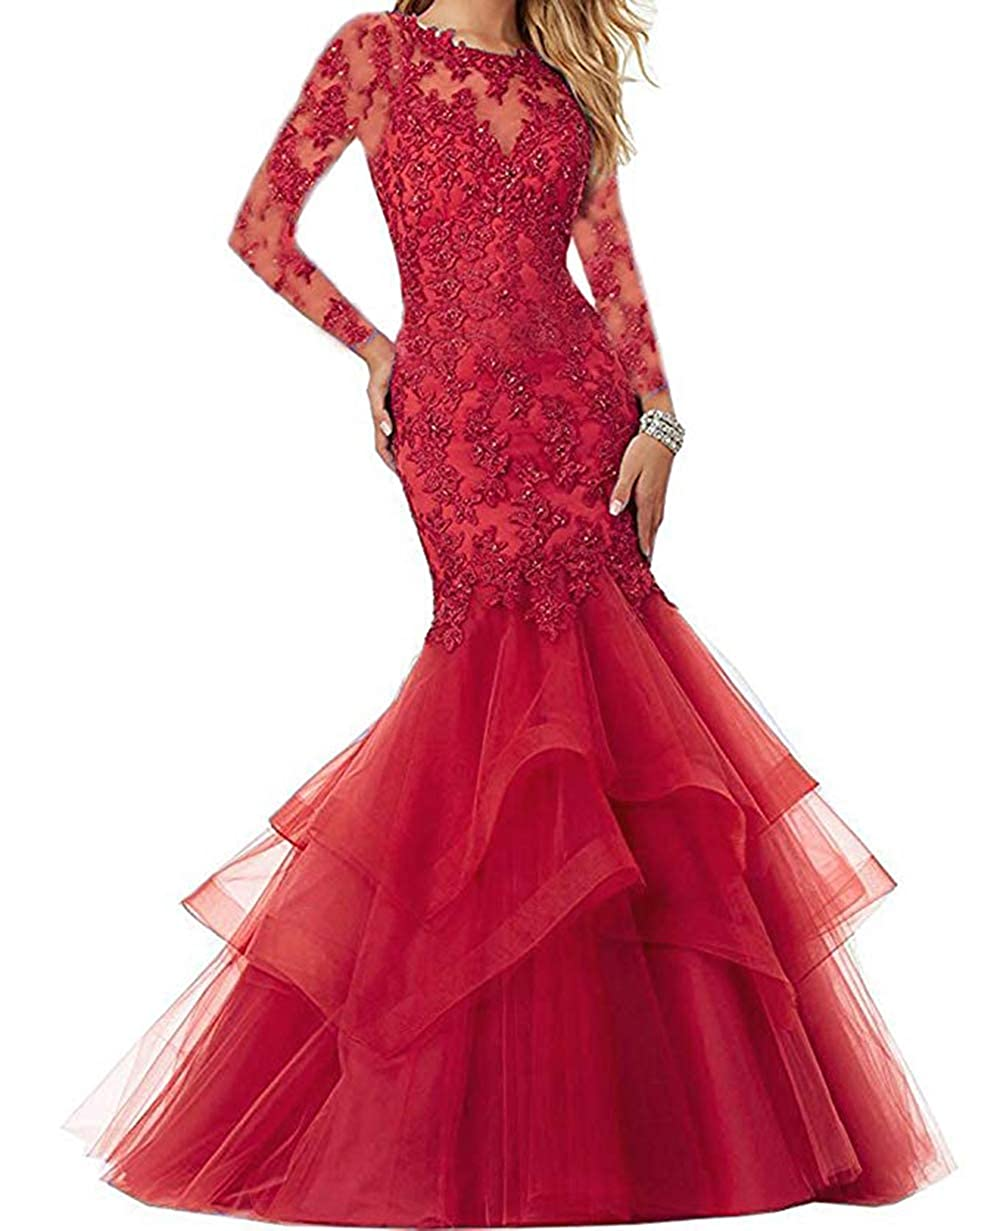 Dark Red Women's Mermaid Prom Dresses Beaded Lace Appliques Formal Evening Gowns Long Sleeves